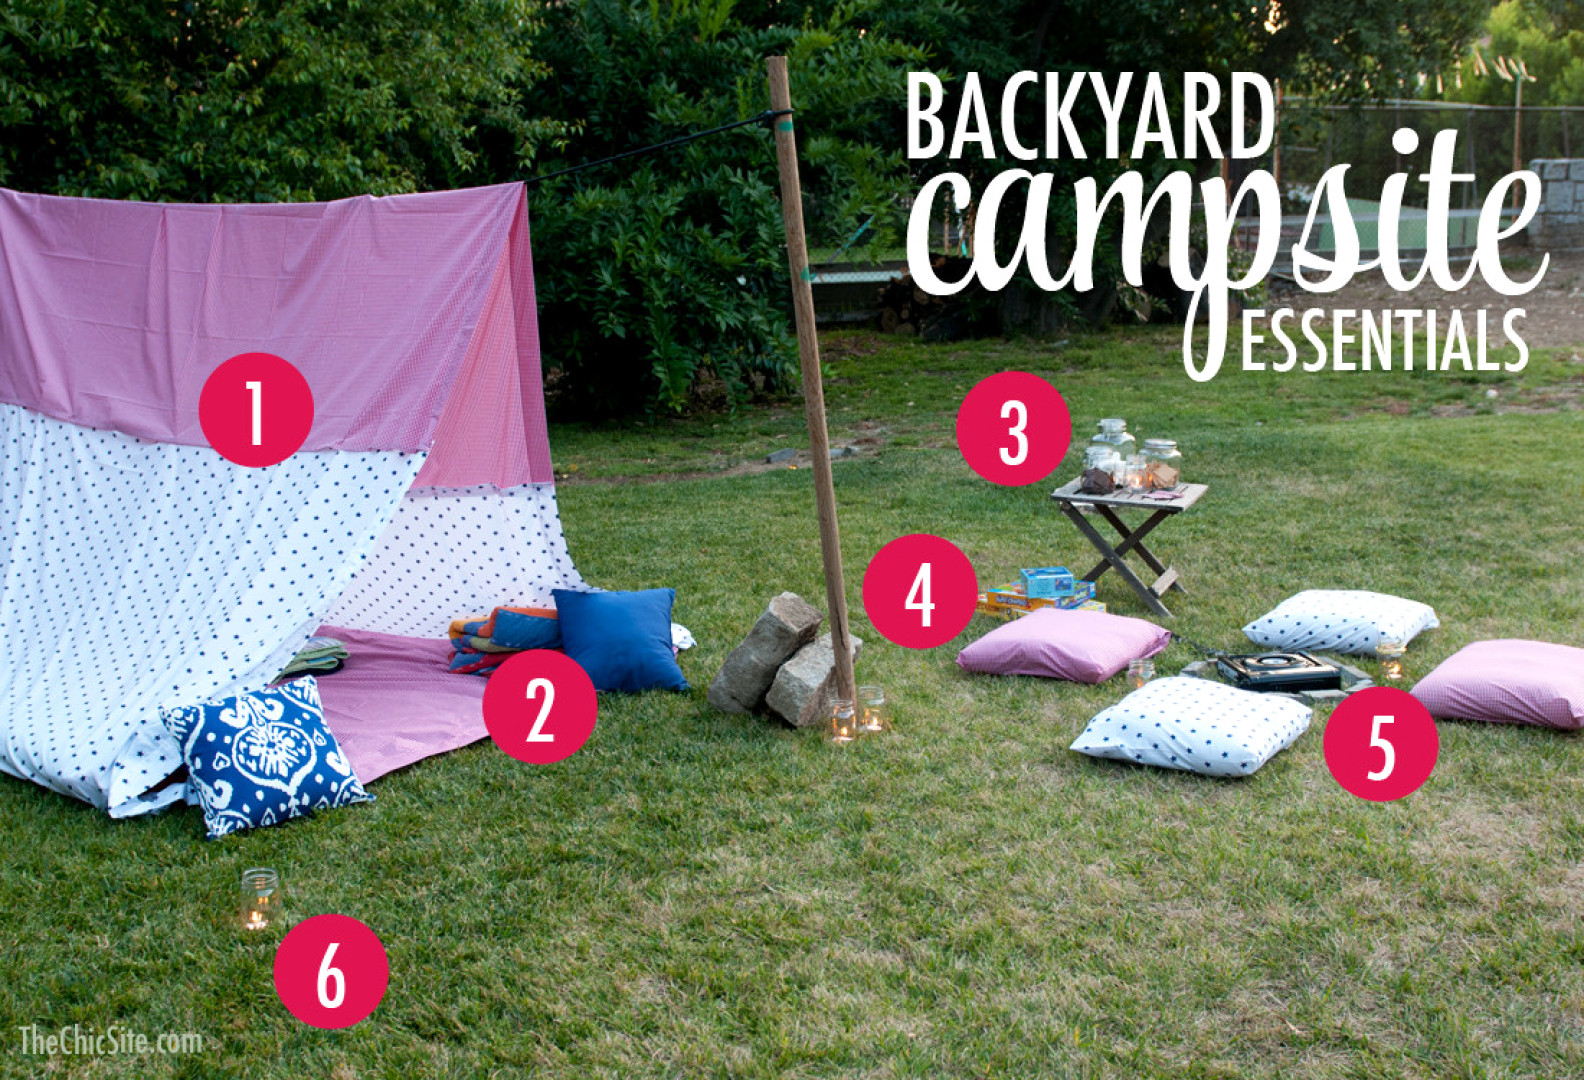 Backyard Camping Ideas For Kids Bathroom Ideas Fashion Files pertaining to Backyard Camping Ideas For Children